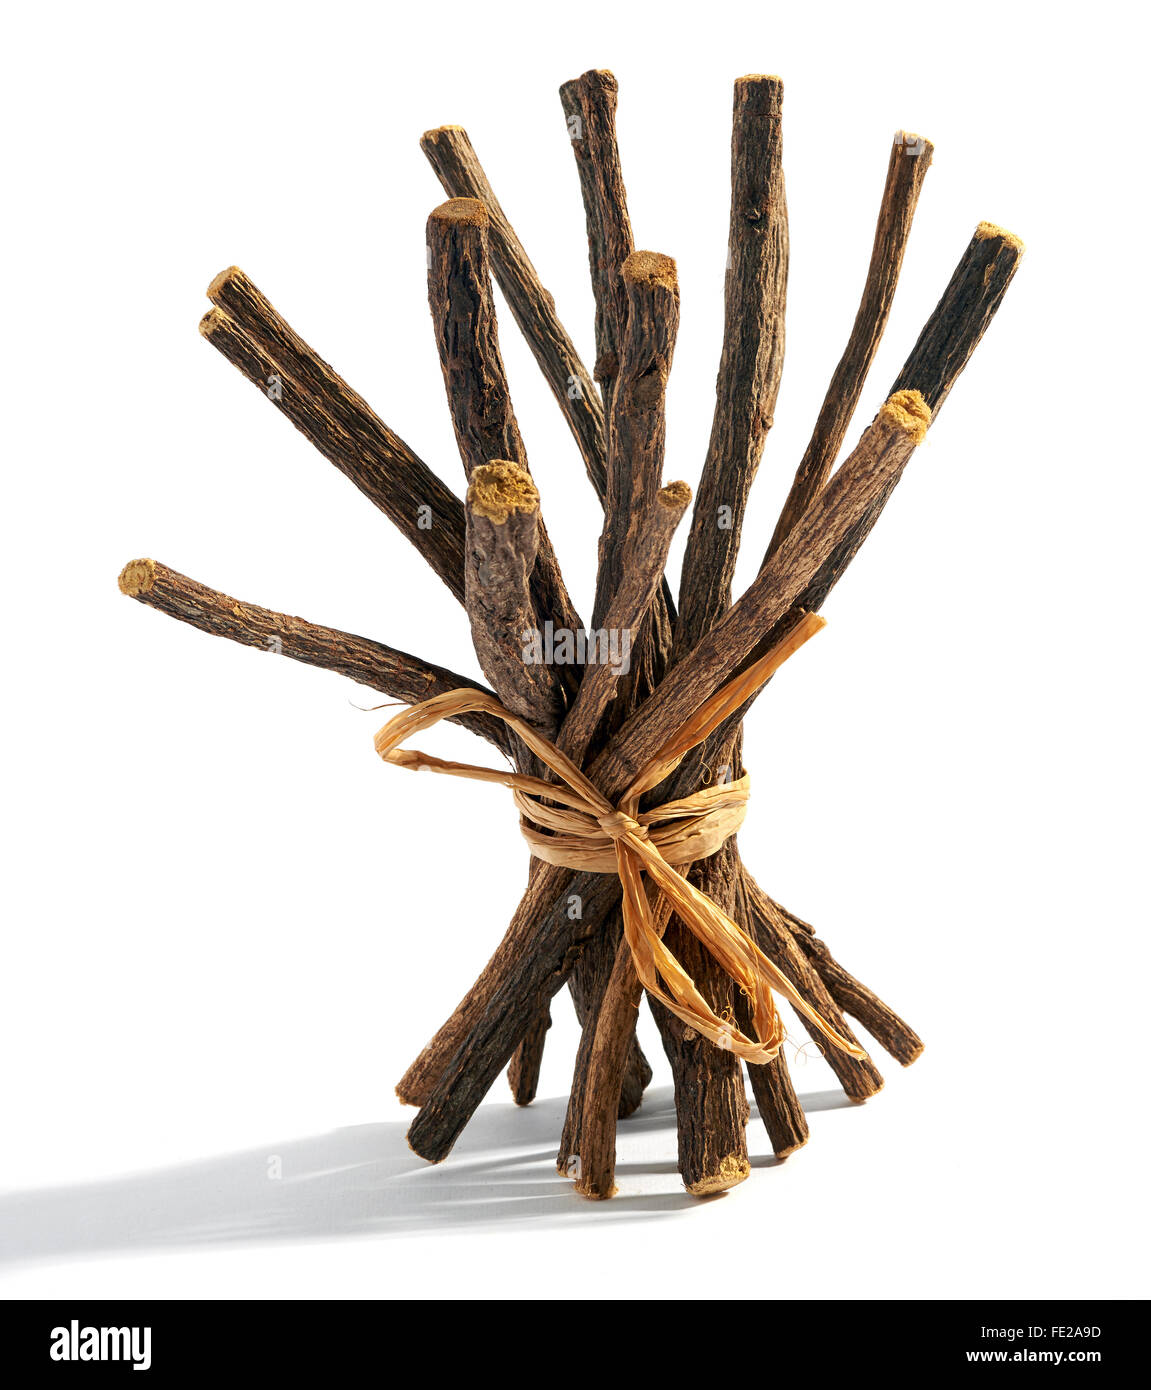 Bundle of dried licorice or liquorice roots tied with raffia for flavoring candy and desserts on a white background - Stock Image